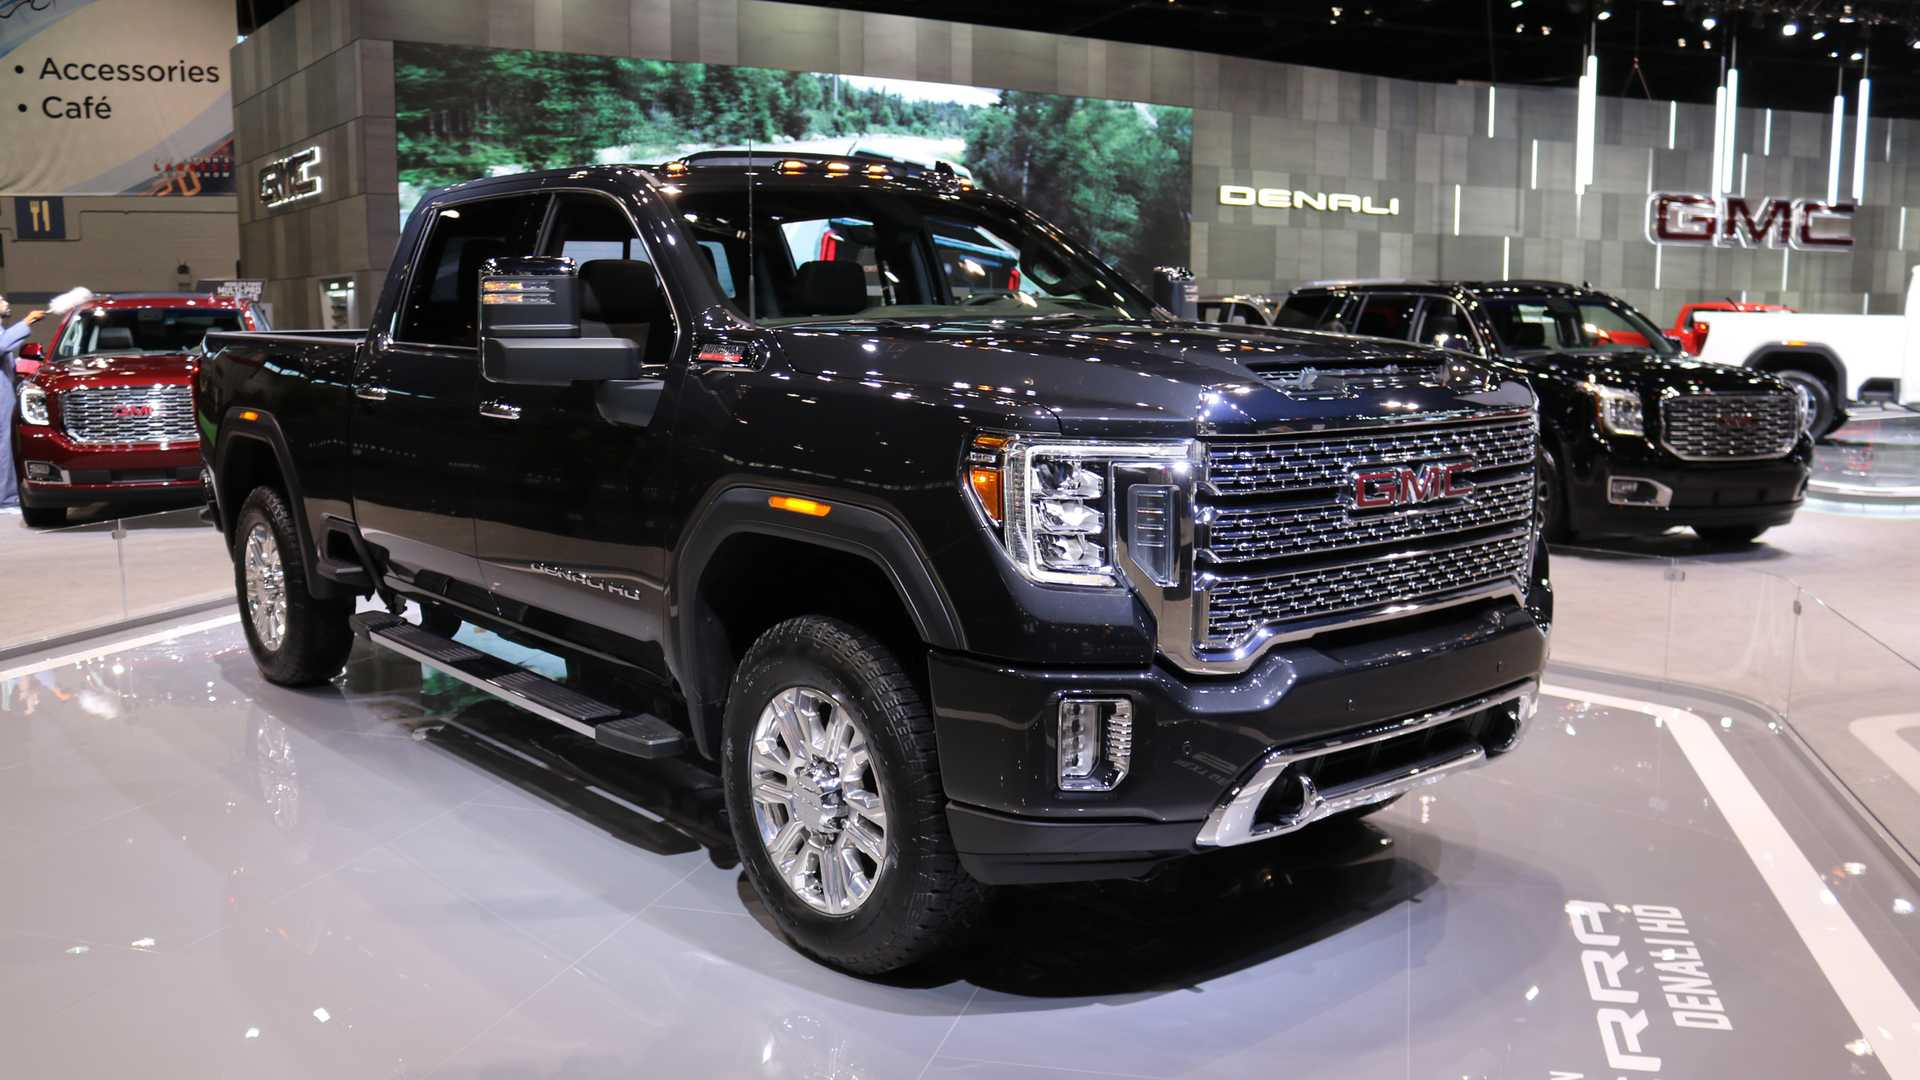 46 Best Review 2020 Gmc Sierra Hd Interior Spy Shoot with 2020 Gmc Sierra Hd Interior